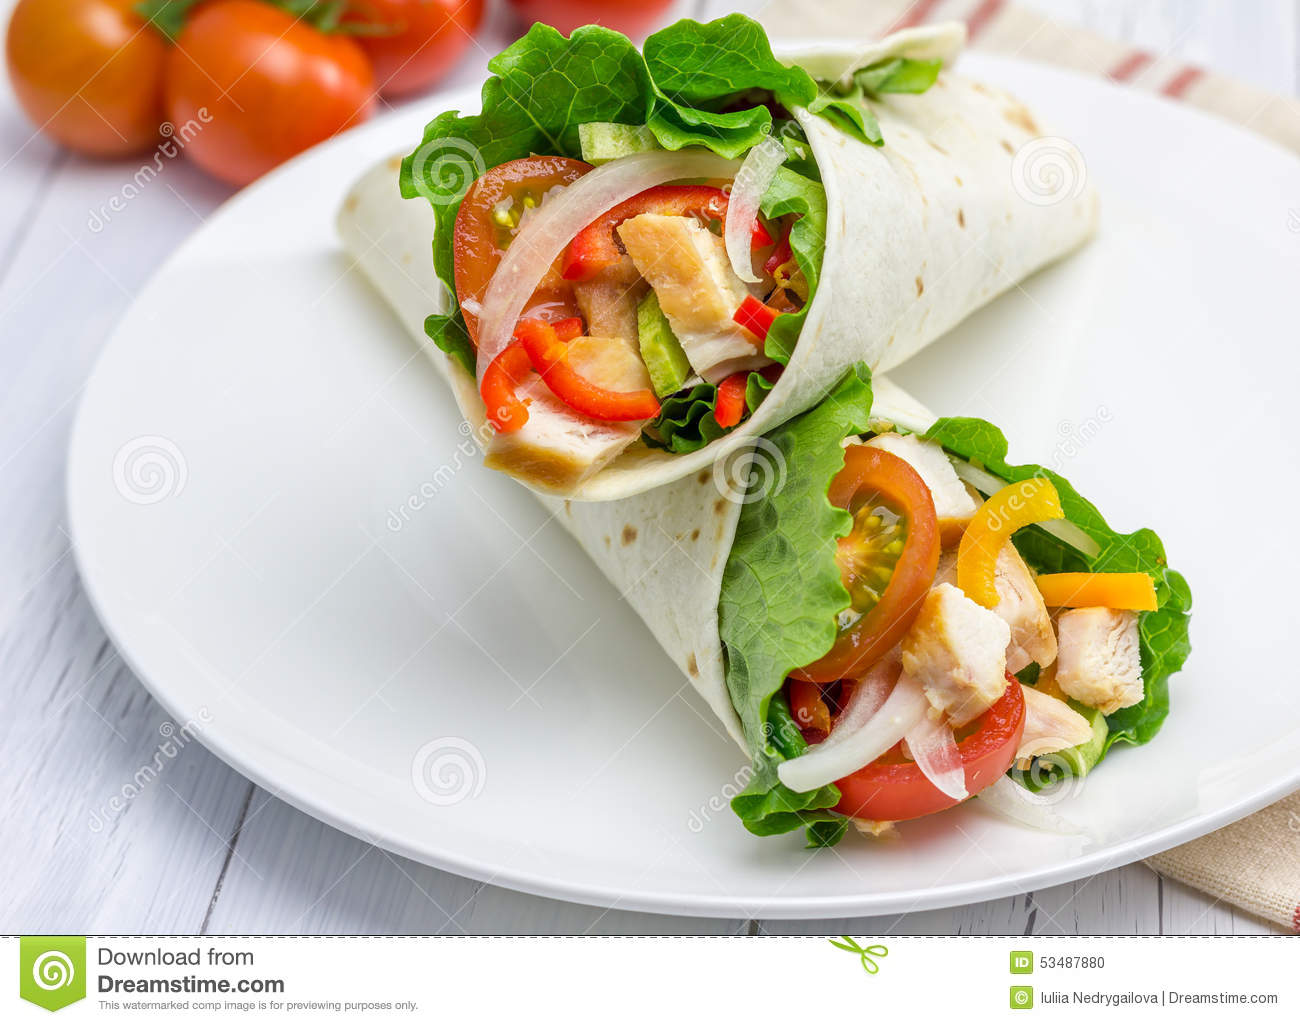 Tortilla wraps with roasted chicken fillet, fresh vegetables and sauce